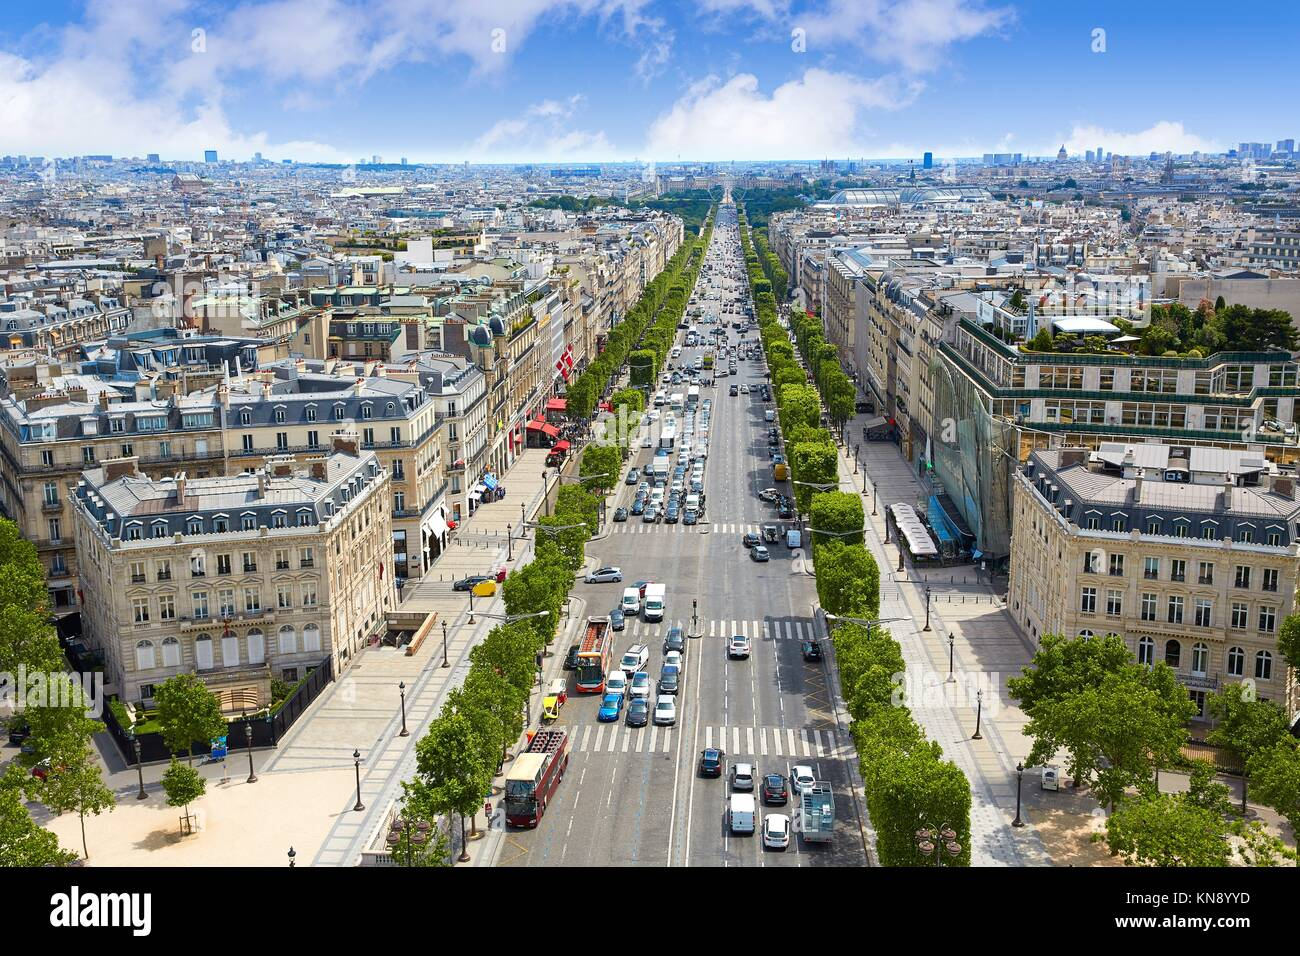 Paris skyline Champs Elysees and Concorde aerial view in France. - Stock Image